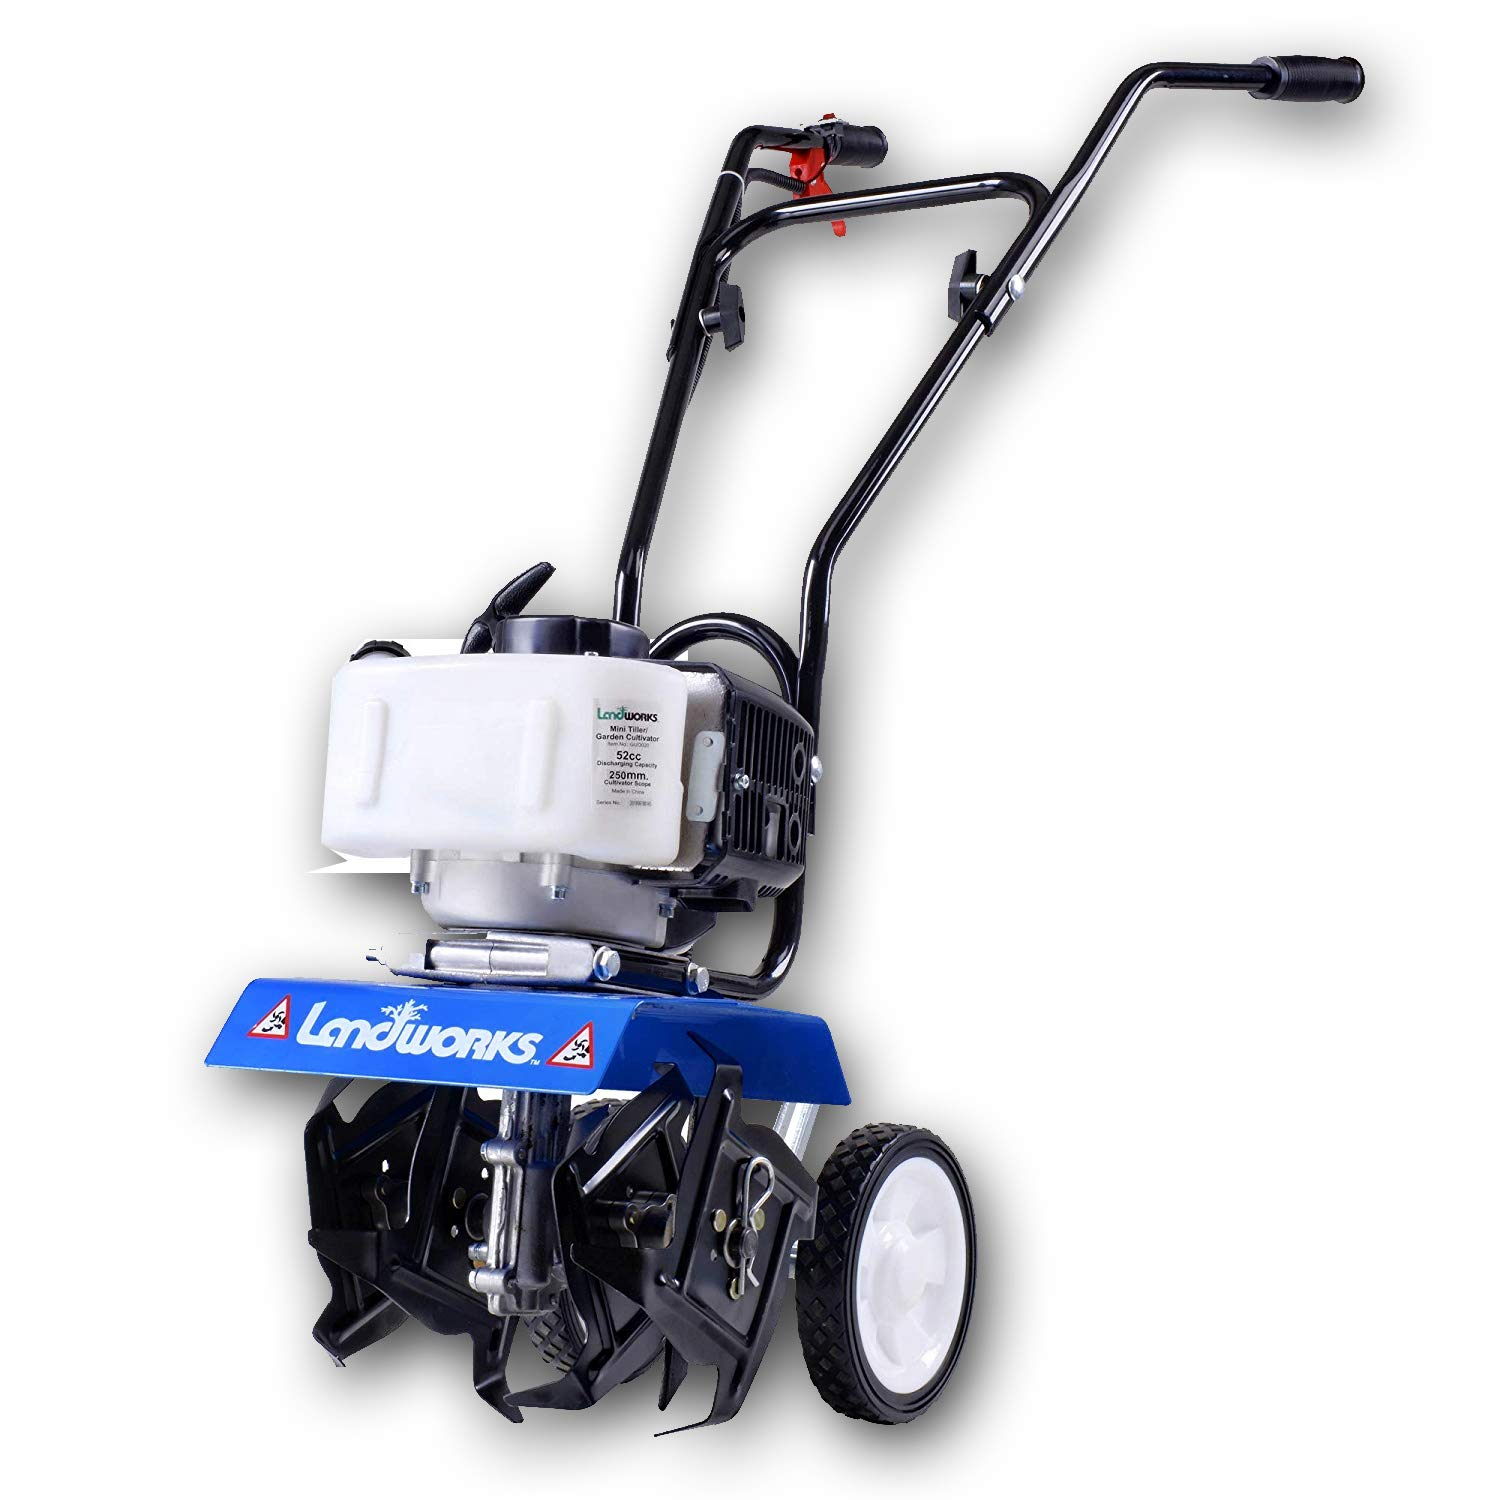 Landworks Super Duty Mini Tiller Cultivator 3HP 52cc 2 Stroke Gas Motor 4 Premium Steel Adjustable Forward Rotating Tines for Garden & Lawn, Digging, Weed Removal & Soil Cultivation EPA/CARB Certified by Landworks